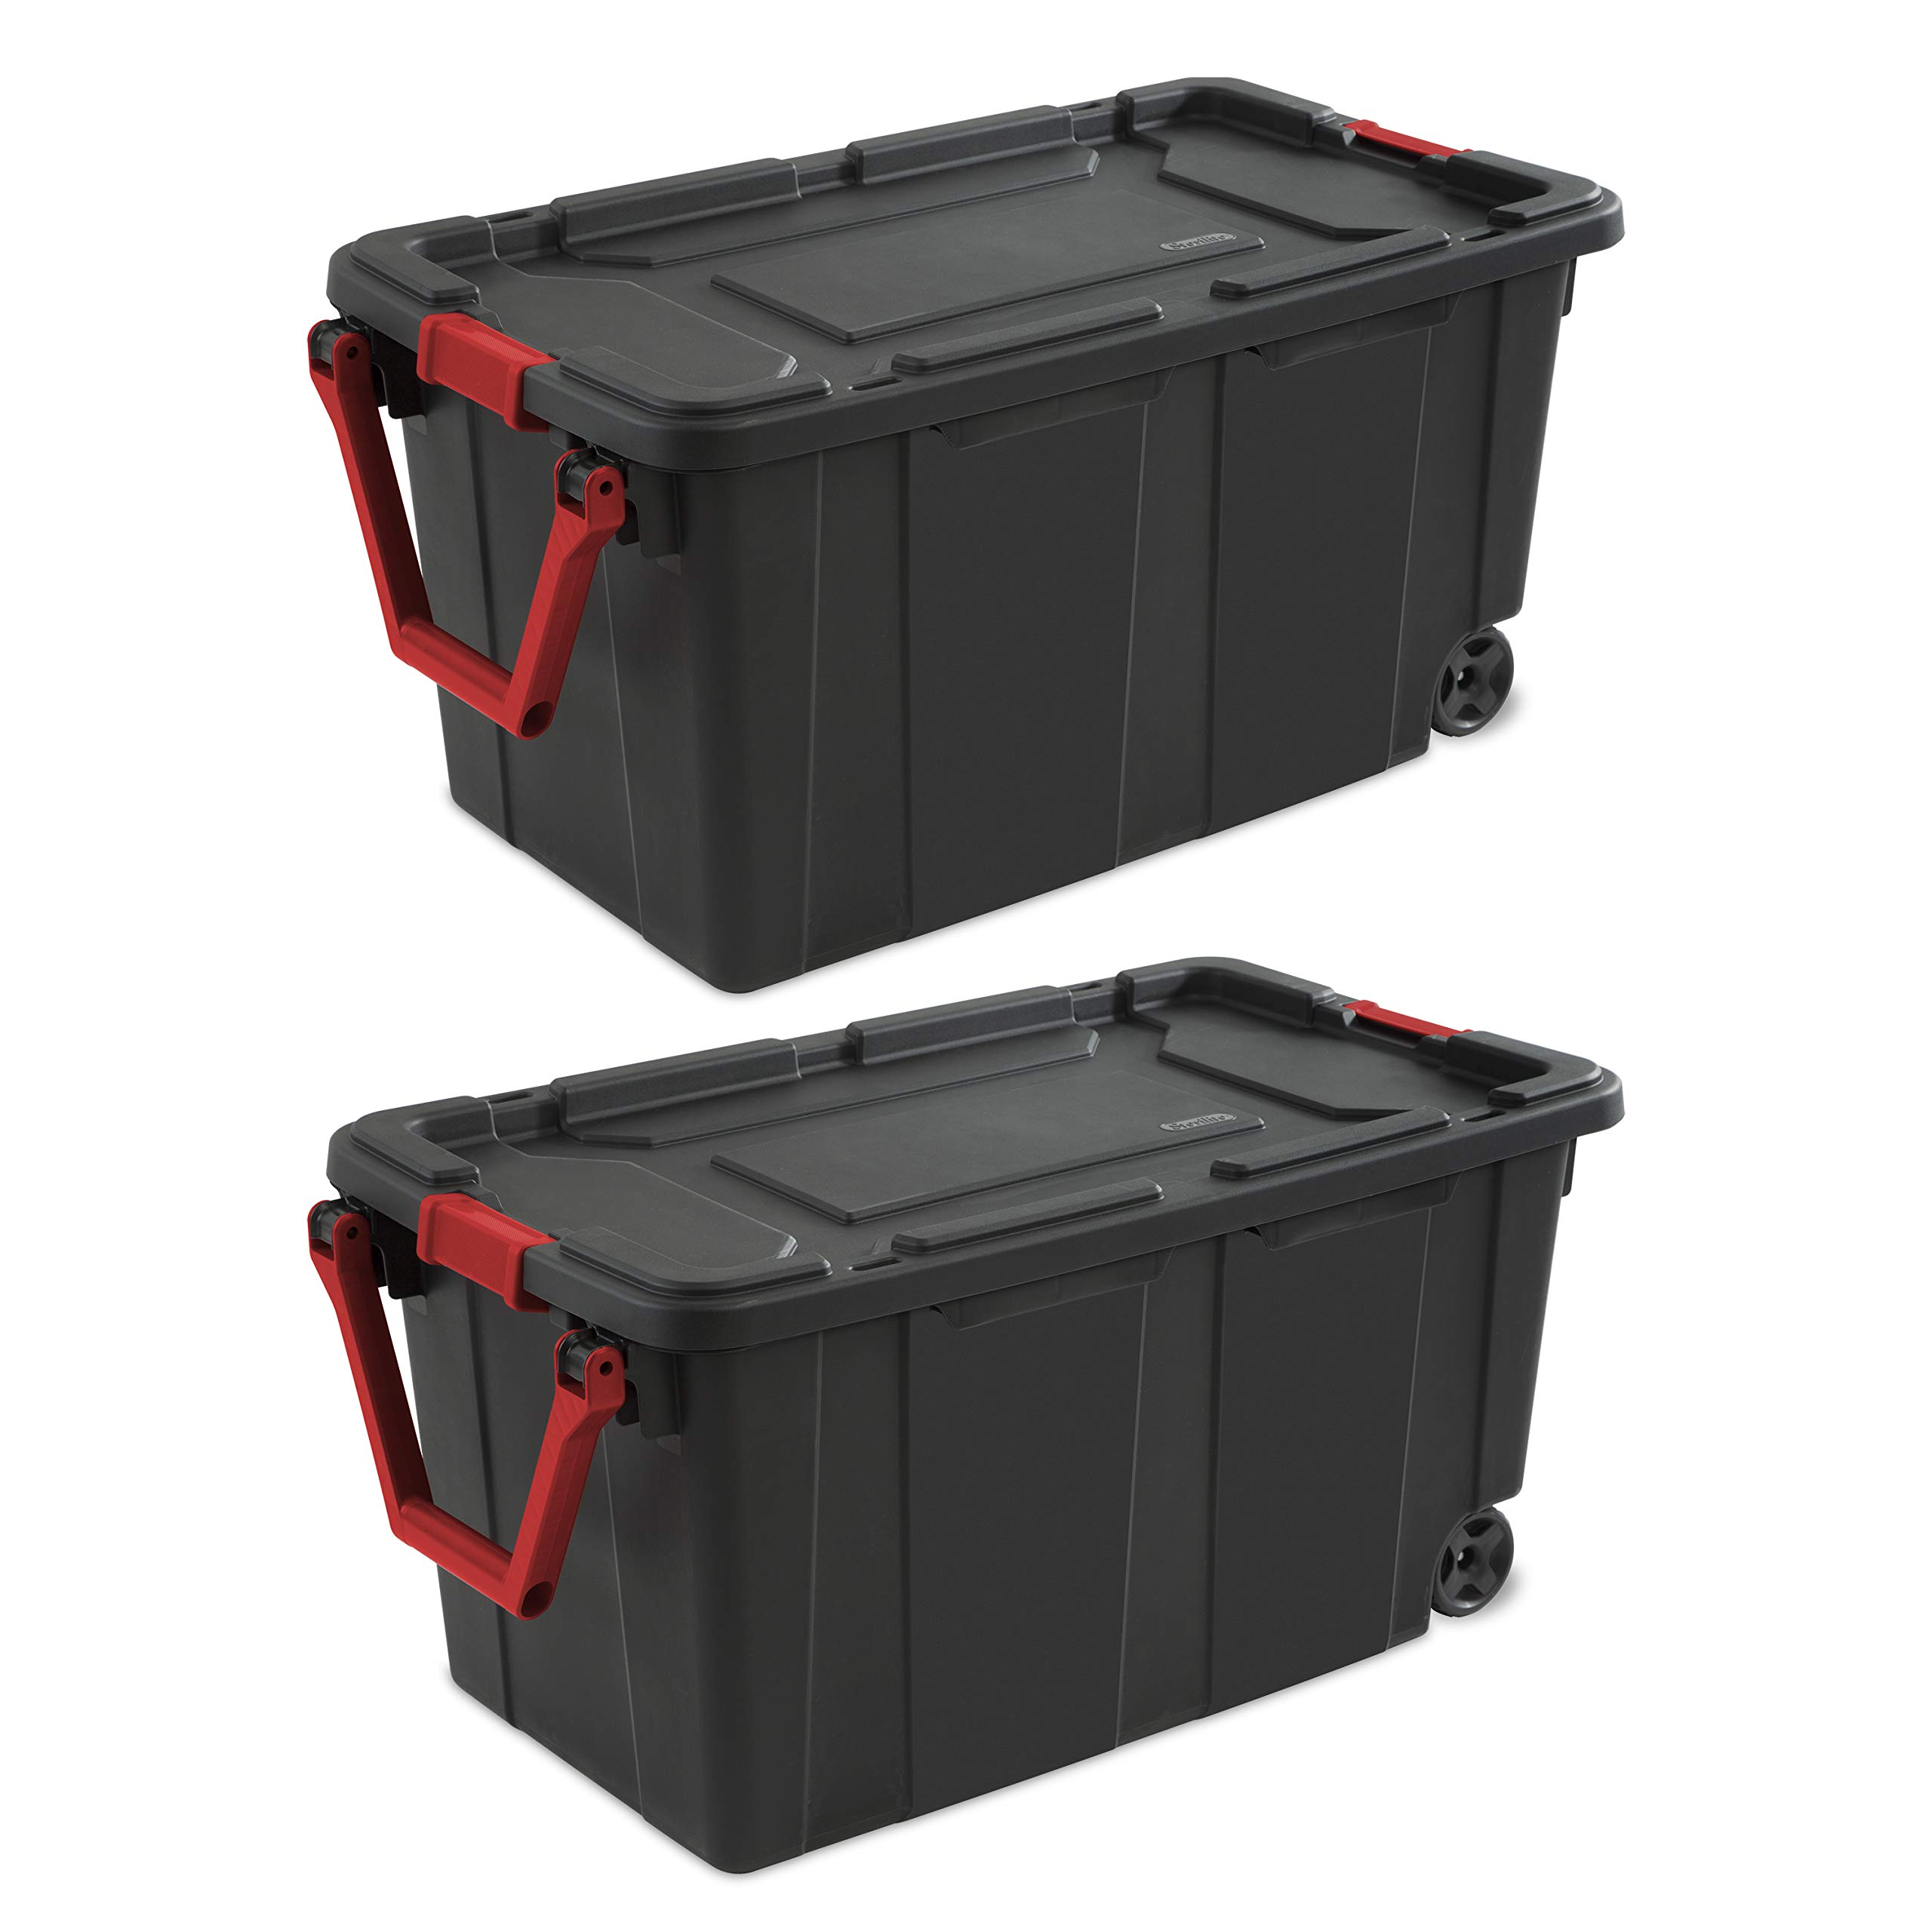 Sterilite 14699002 40 Gallon/151 Liter Wheeled Industrial Tote, Black Lid & Base w/ Racer Red Handle & Latches, 2-Pack by STERILITE